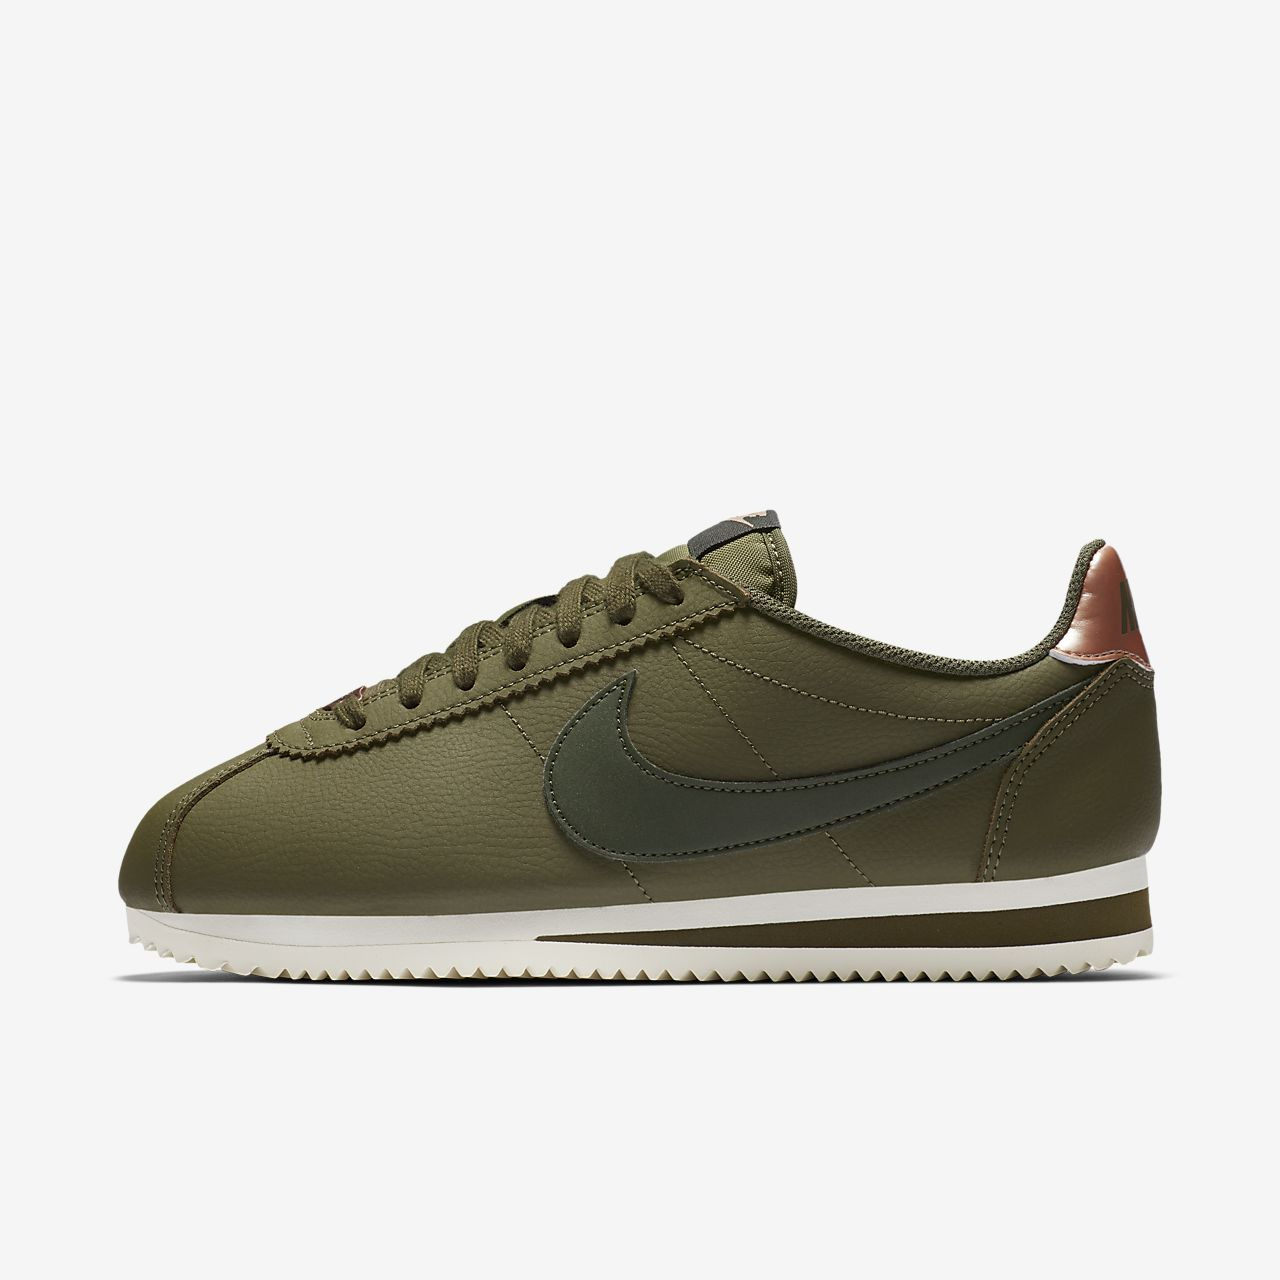 Chaussure Nike Classic Cortez Leather Pour Femme. Ca gfigVcLY